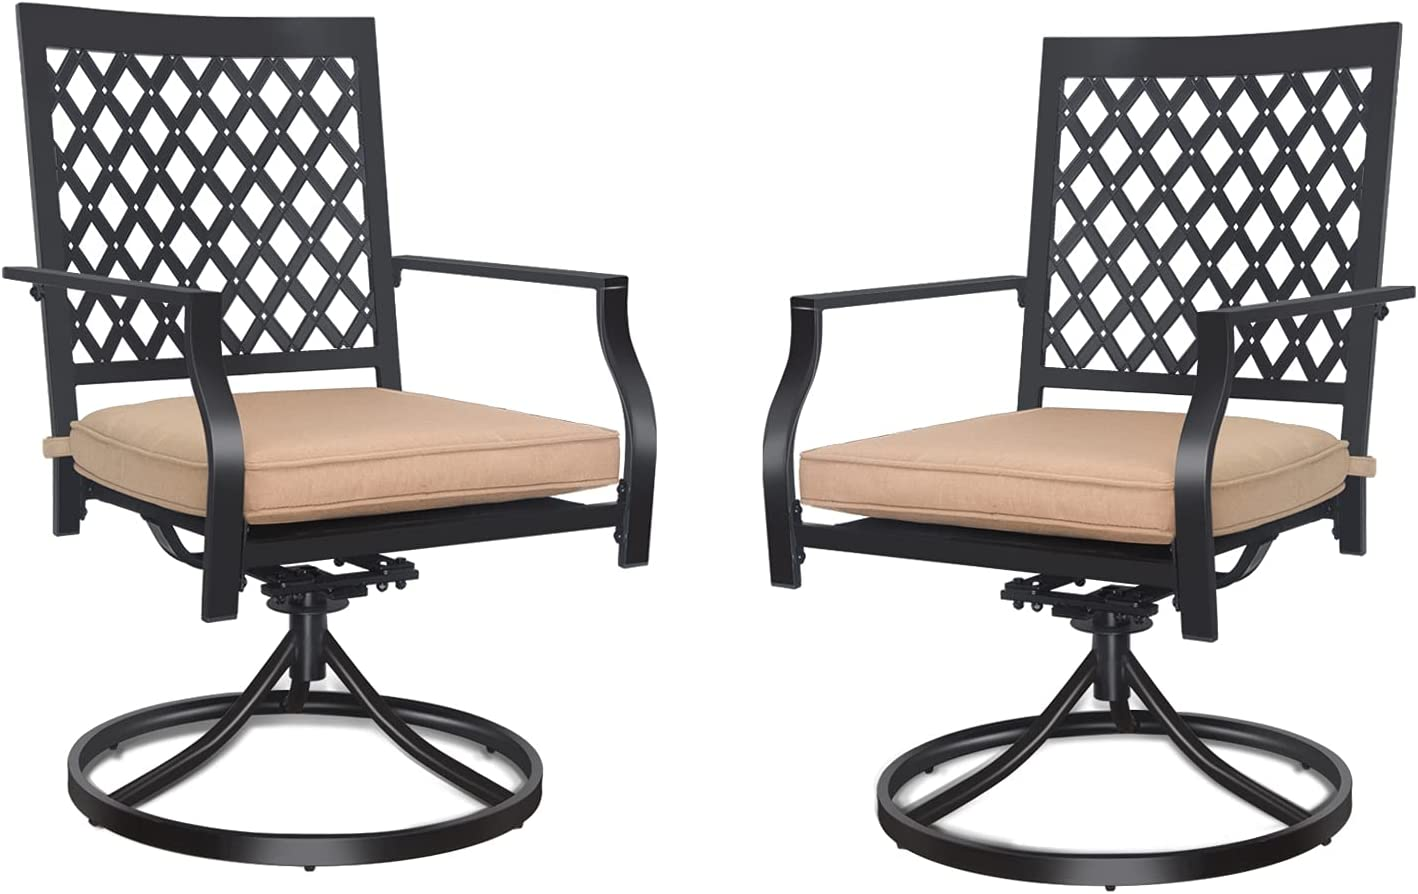 Outdoor Swivel Chairs Set of Genuine Free Shipping 2 Chair Patio Rocker Dining Metal w Los Angeles Mall